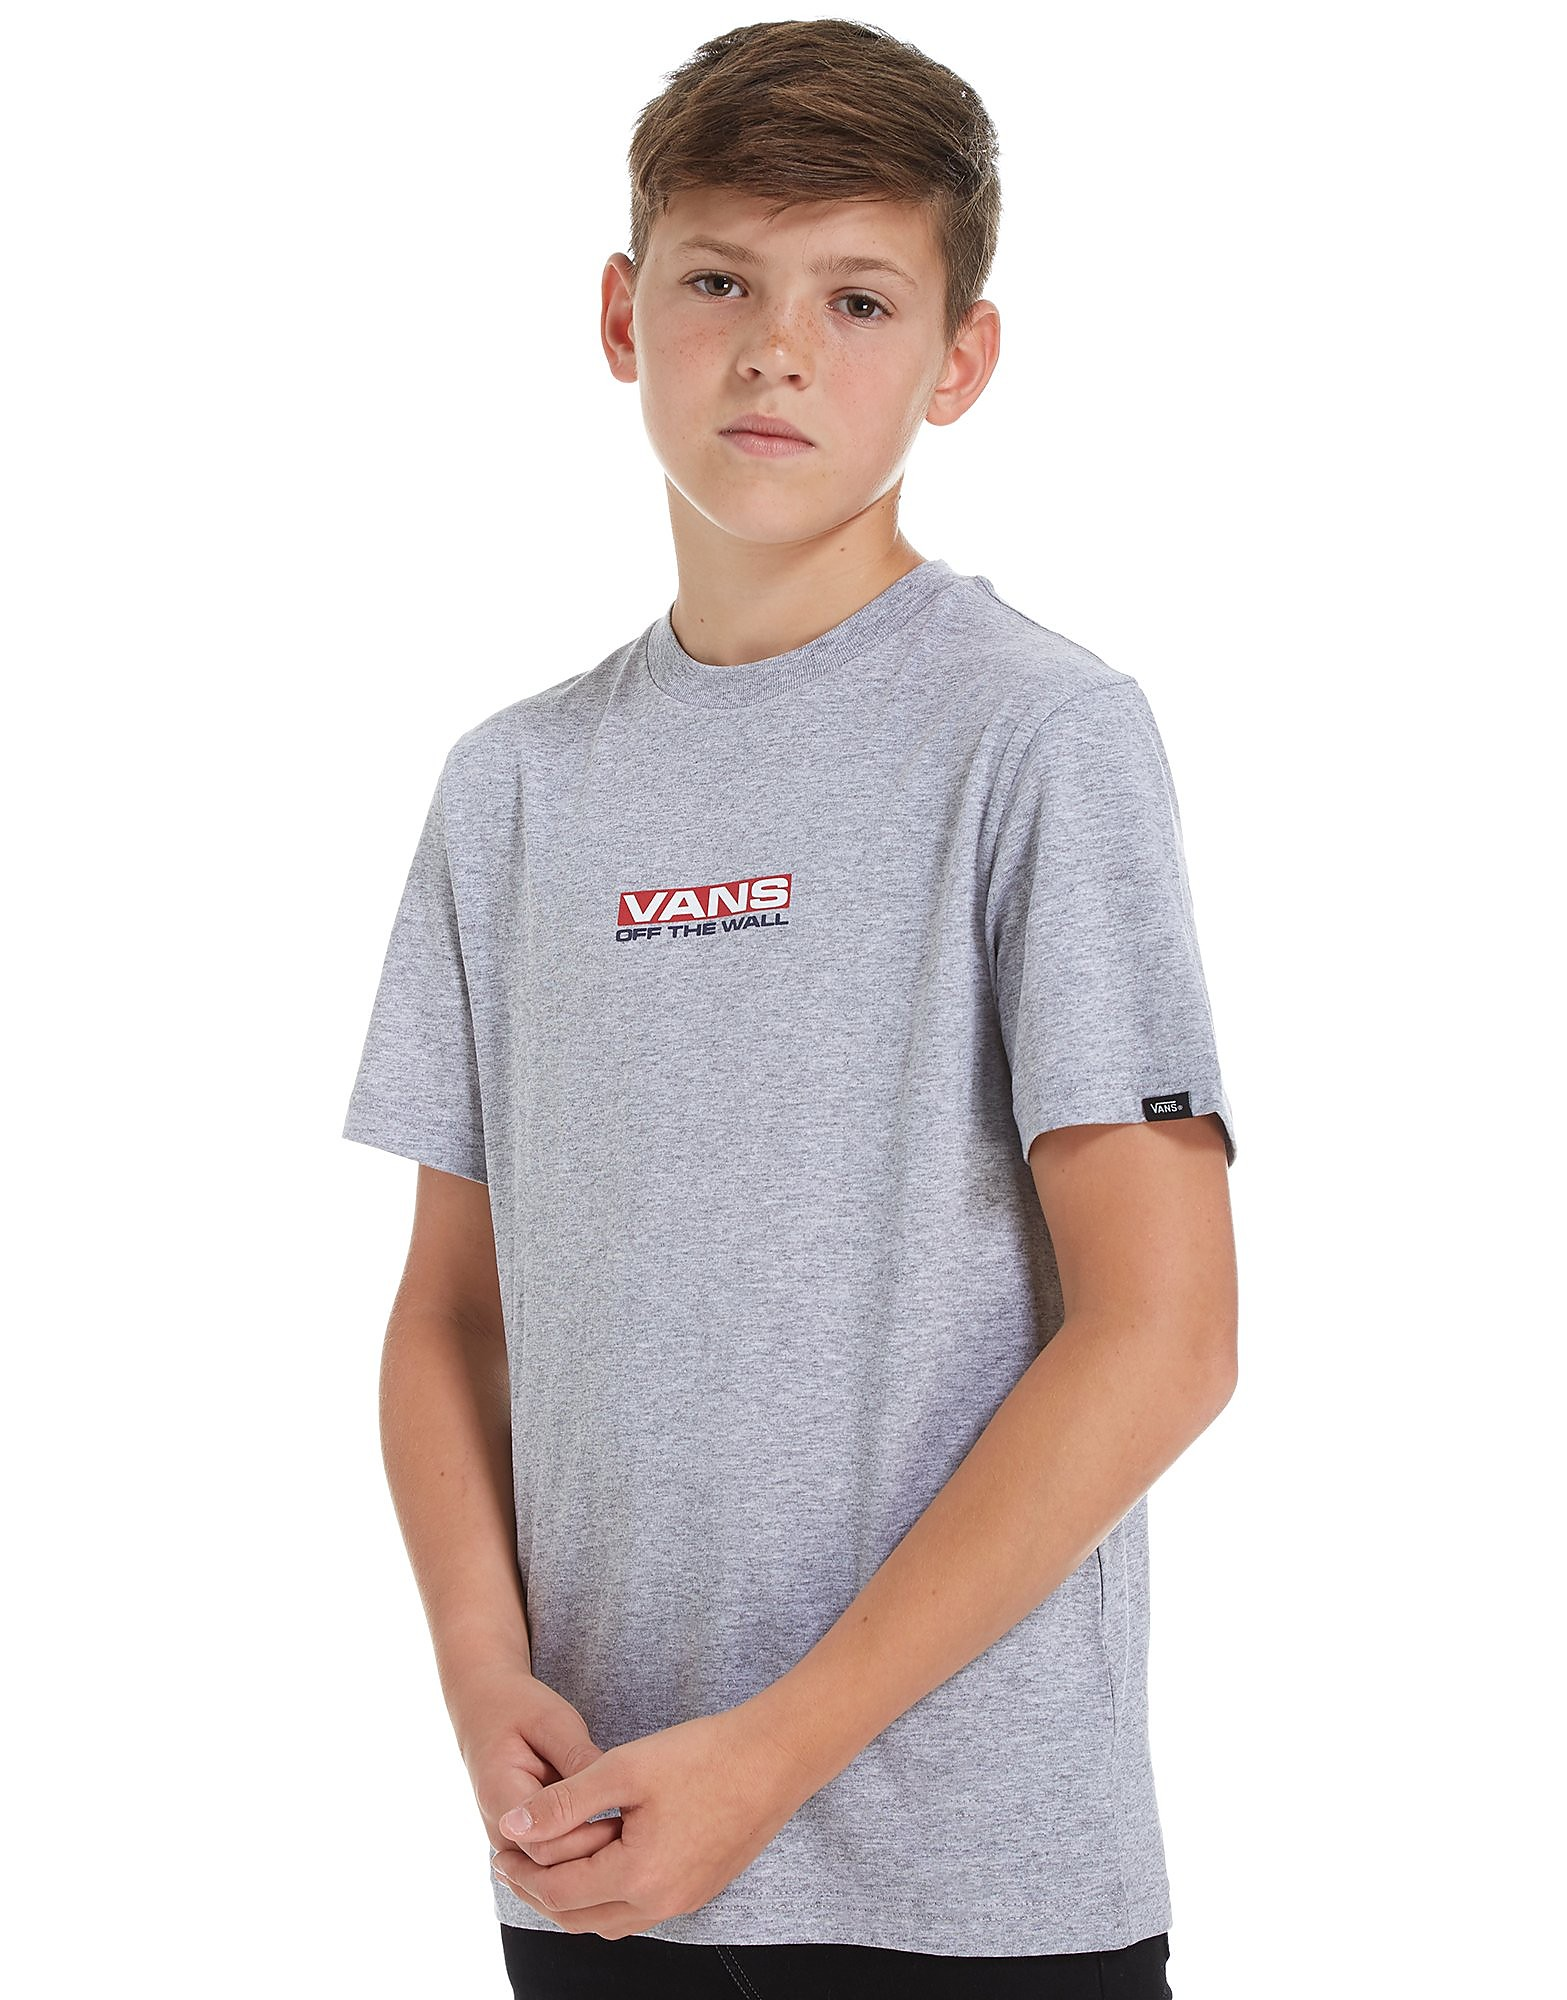 Vans Graphic T-Shirt Junior